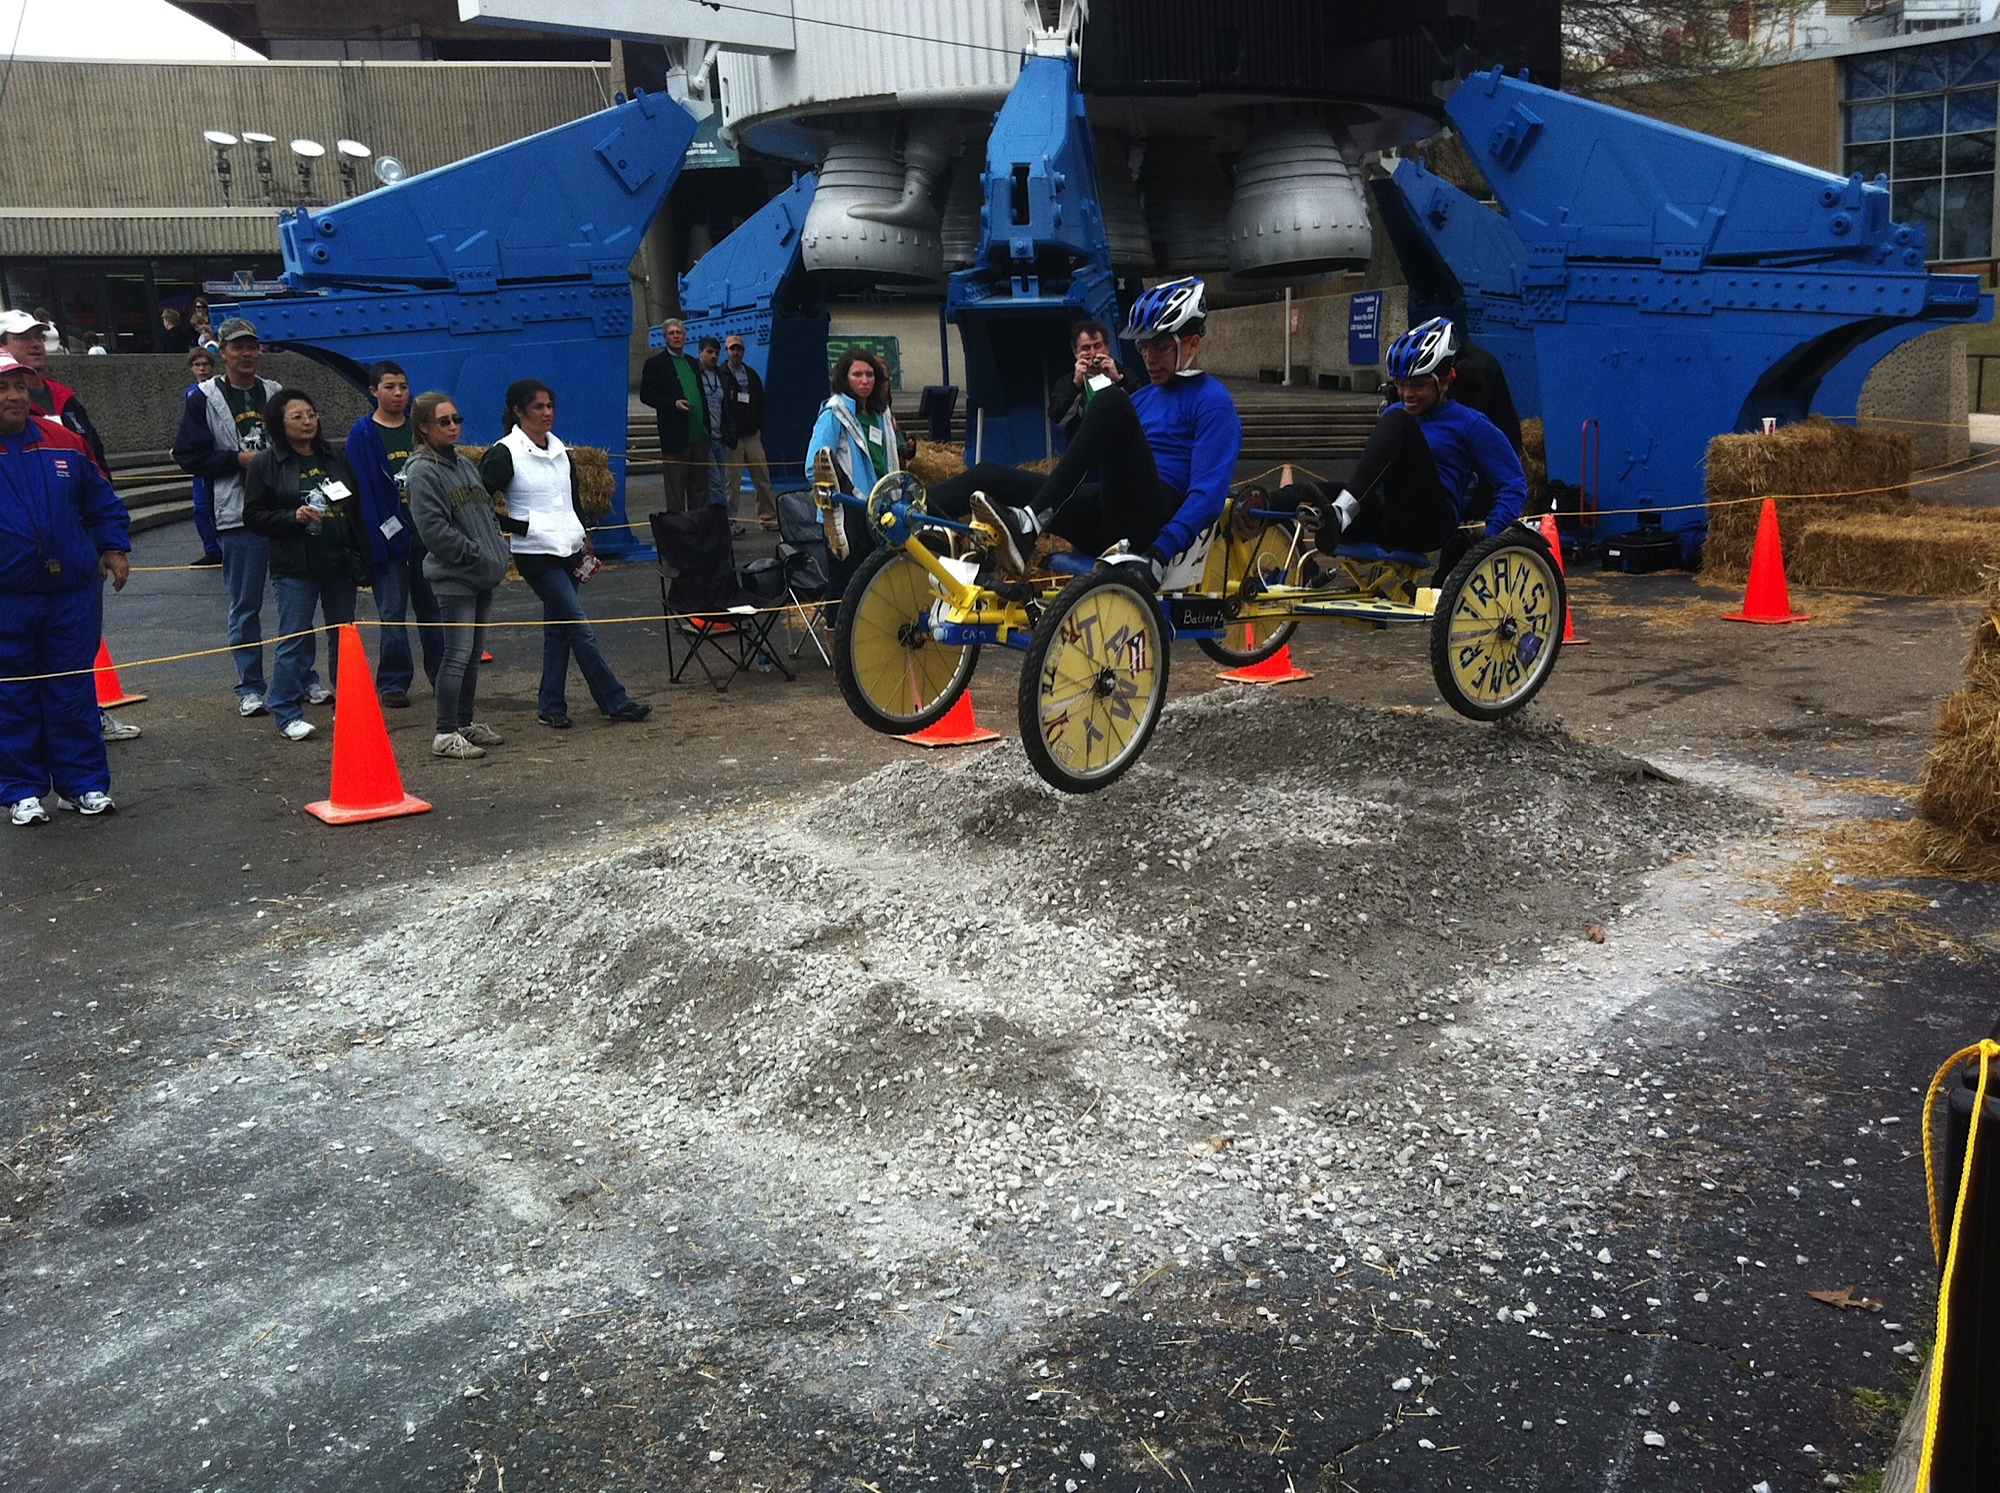 A moonbuggy on the course